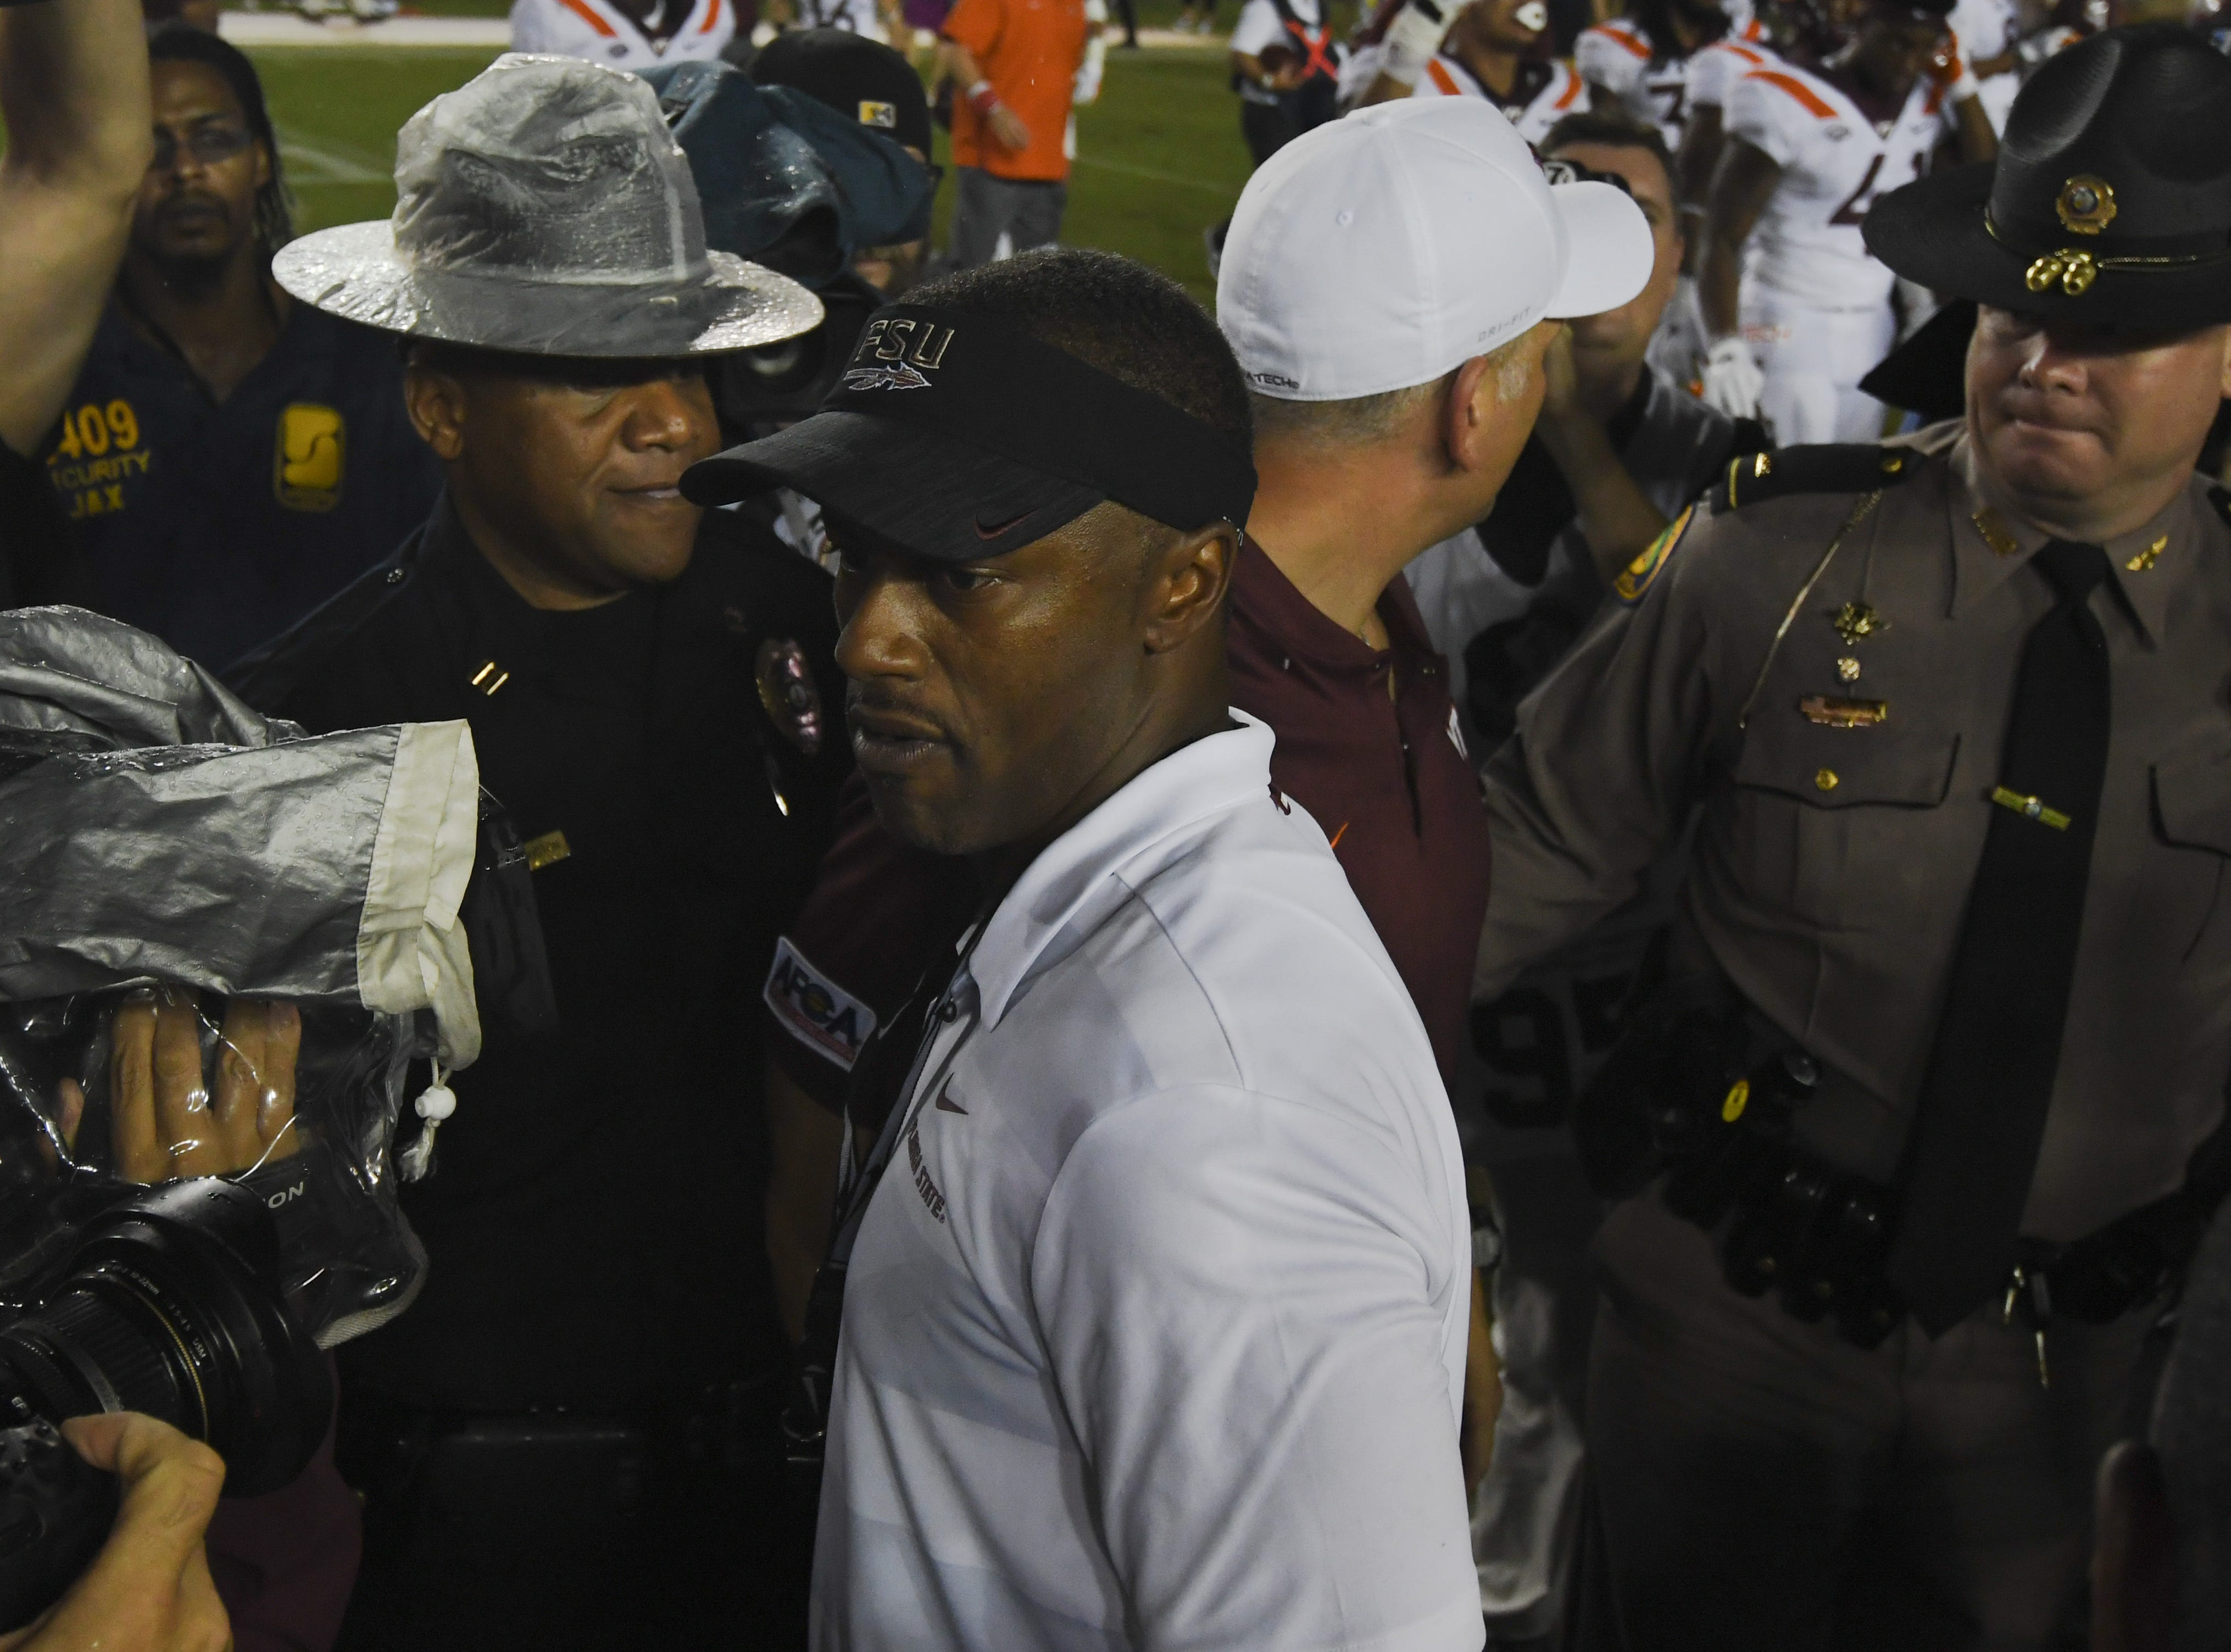 FSU head coach Willie Taggart loses his debut game against Virginia Tech 24-3 on Monday night at Doak Campbell Stadium.